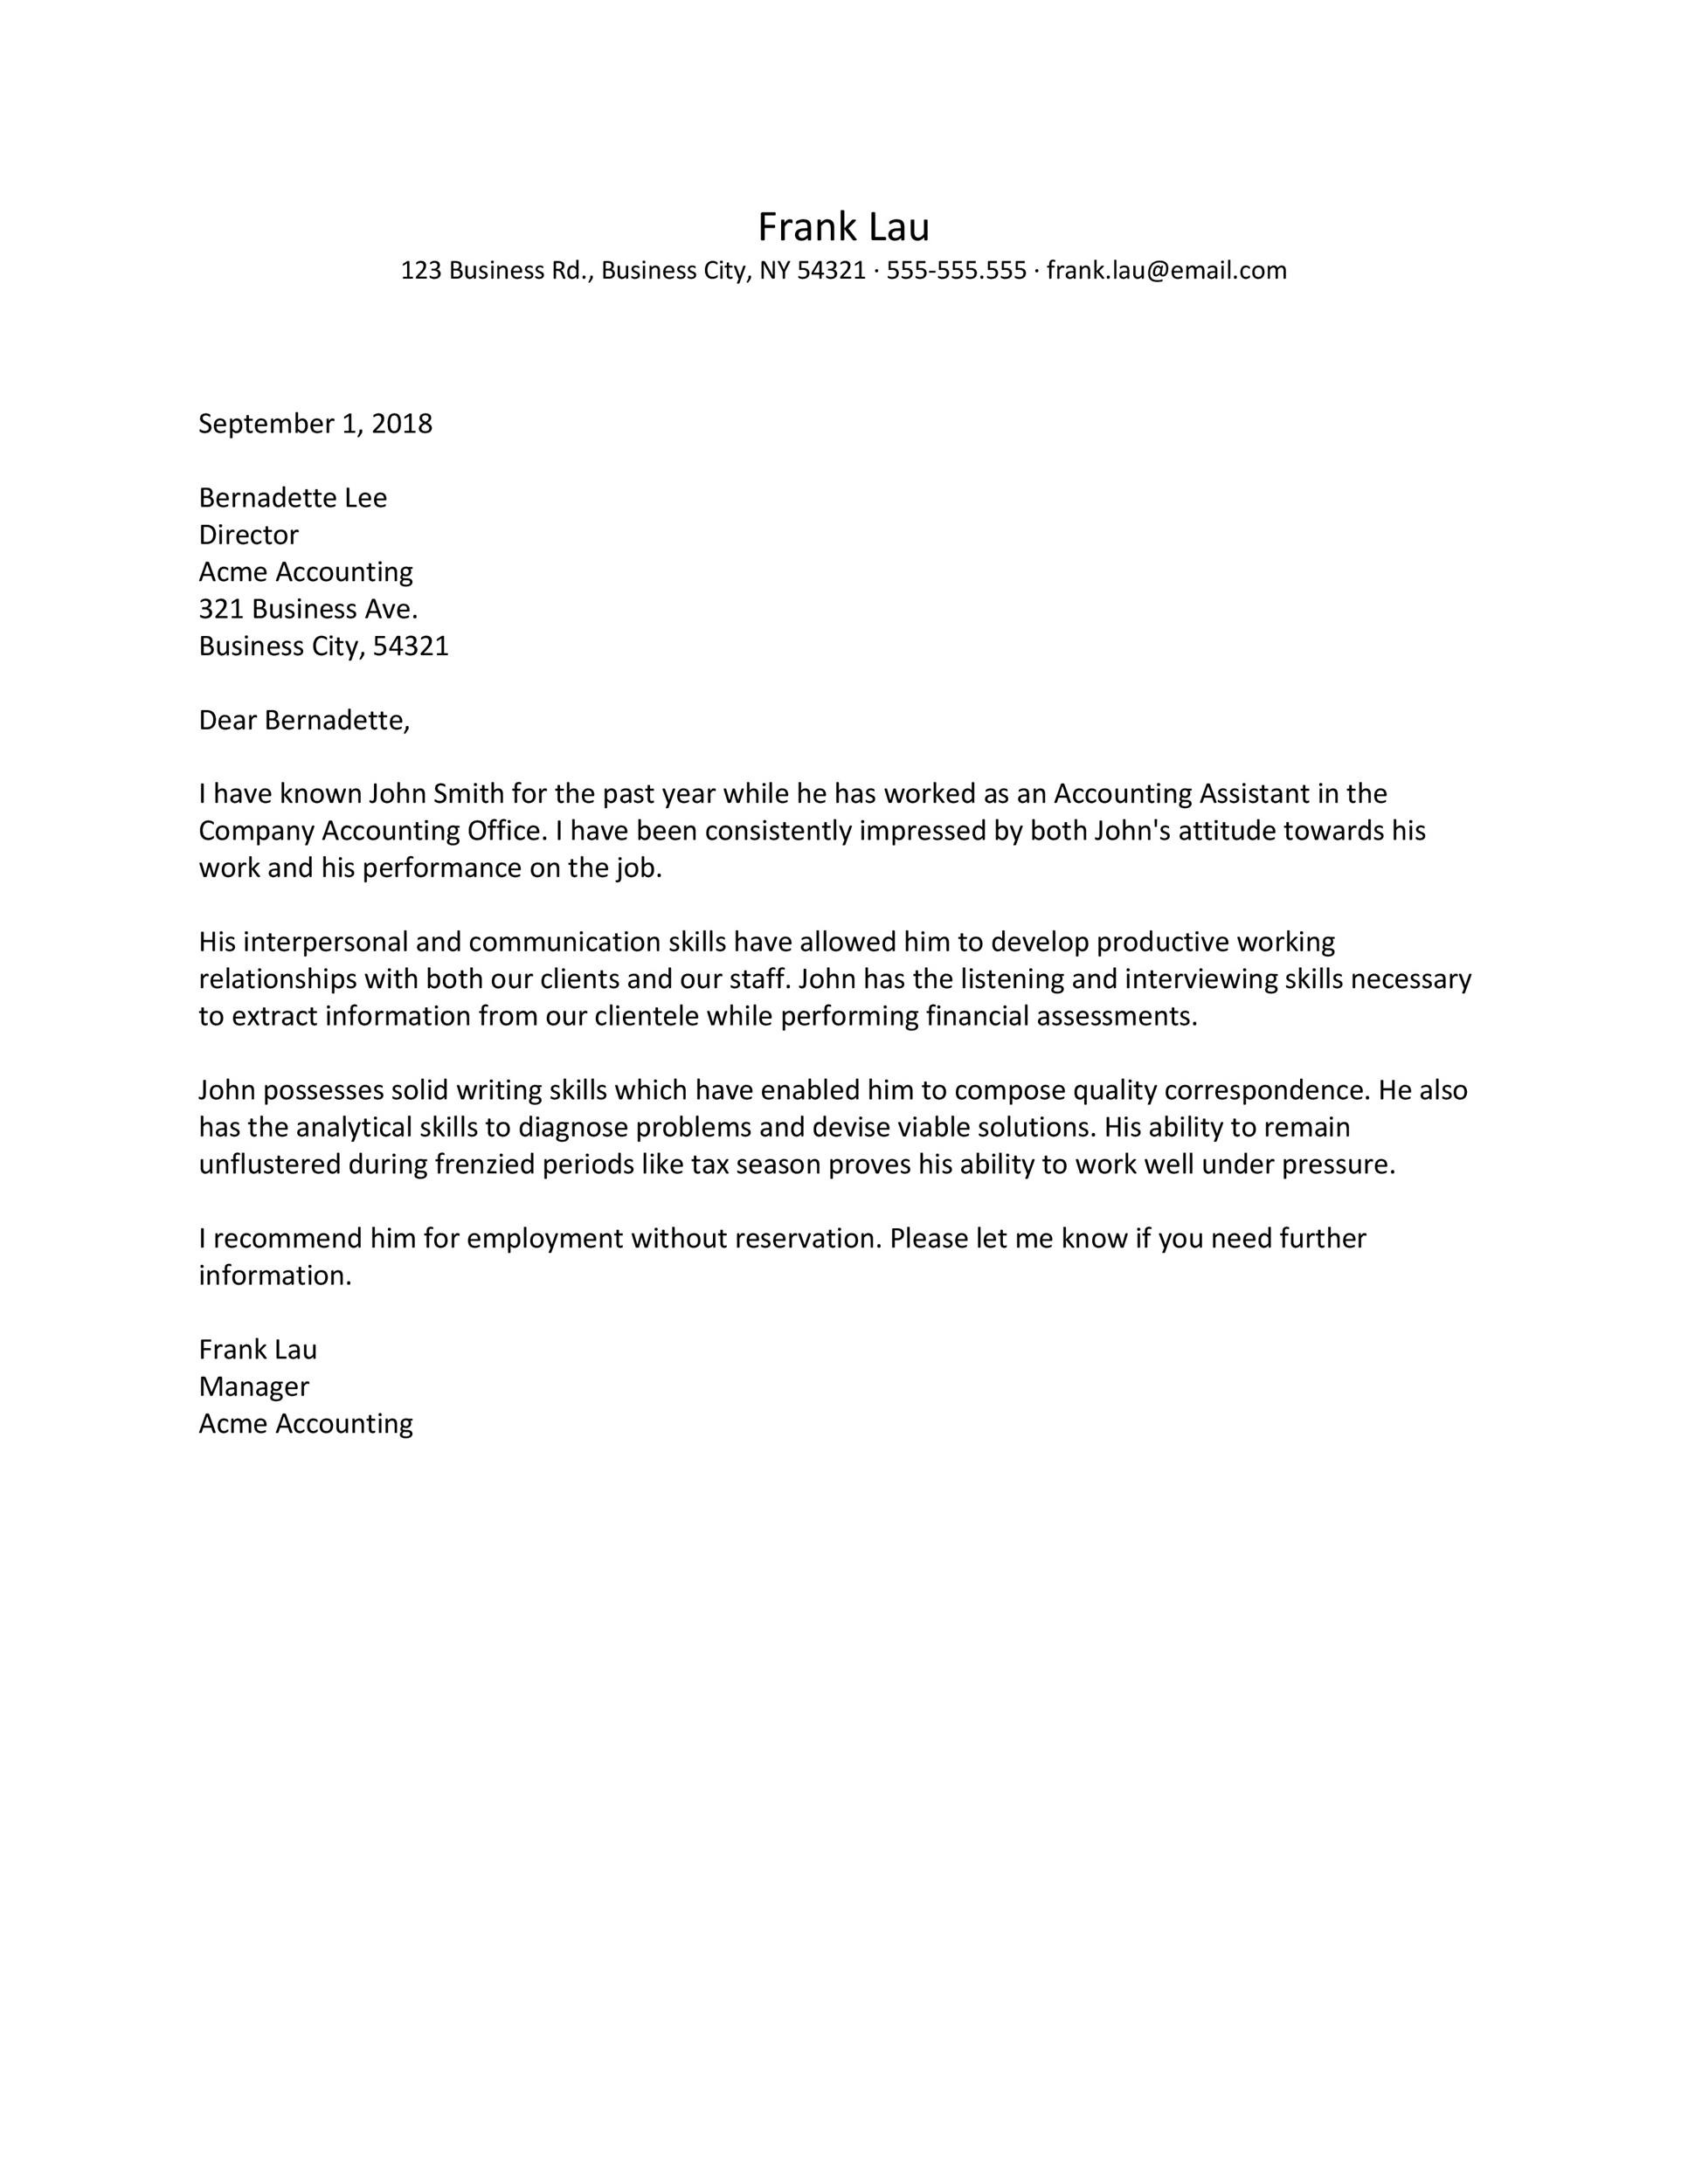 Business Recommendation Letter Example from templatelab.com